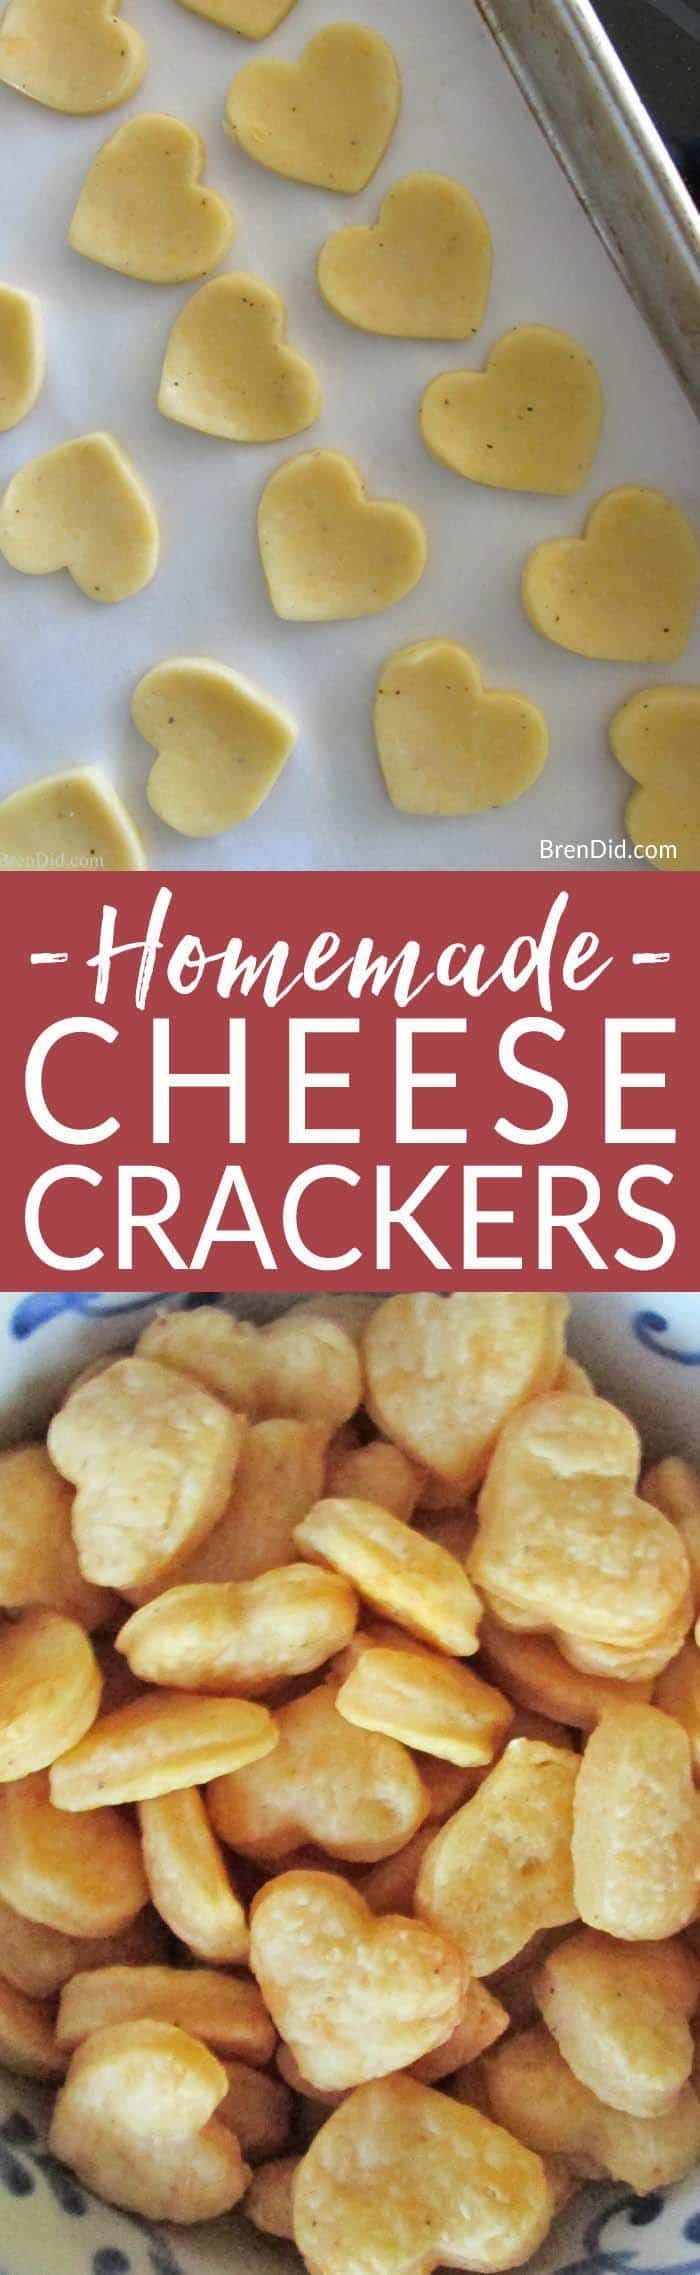 Healthy snack idea: easy, from scratch homemade cheese crackers recipe. Eliminate preservatives & additives from your diet. easy cheese crackers. healthy kids snack #healthykids #snack idea via @brendidblog